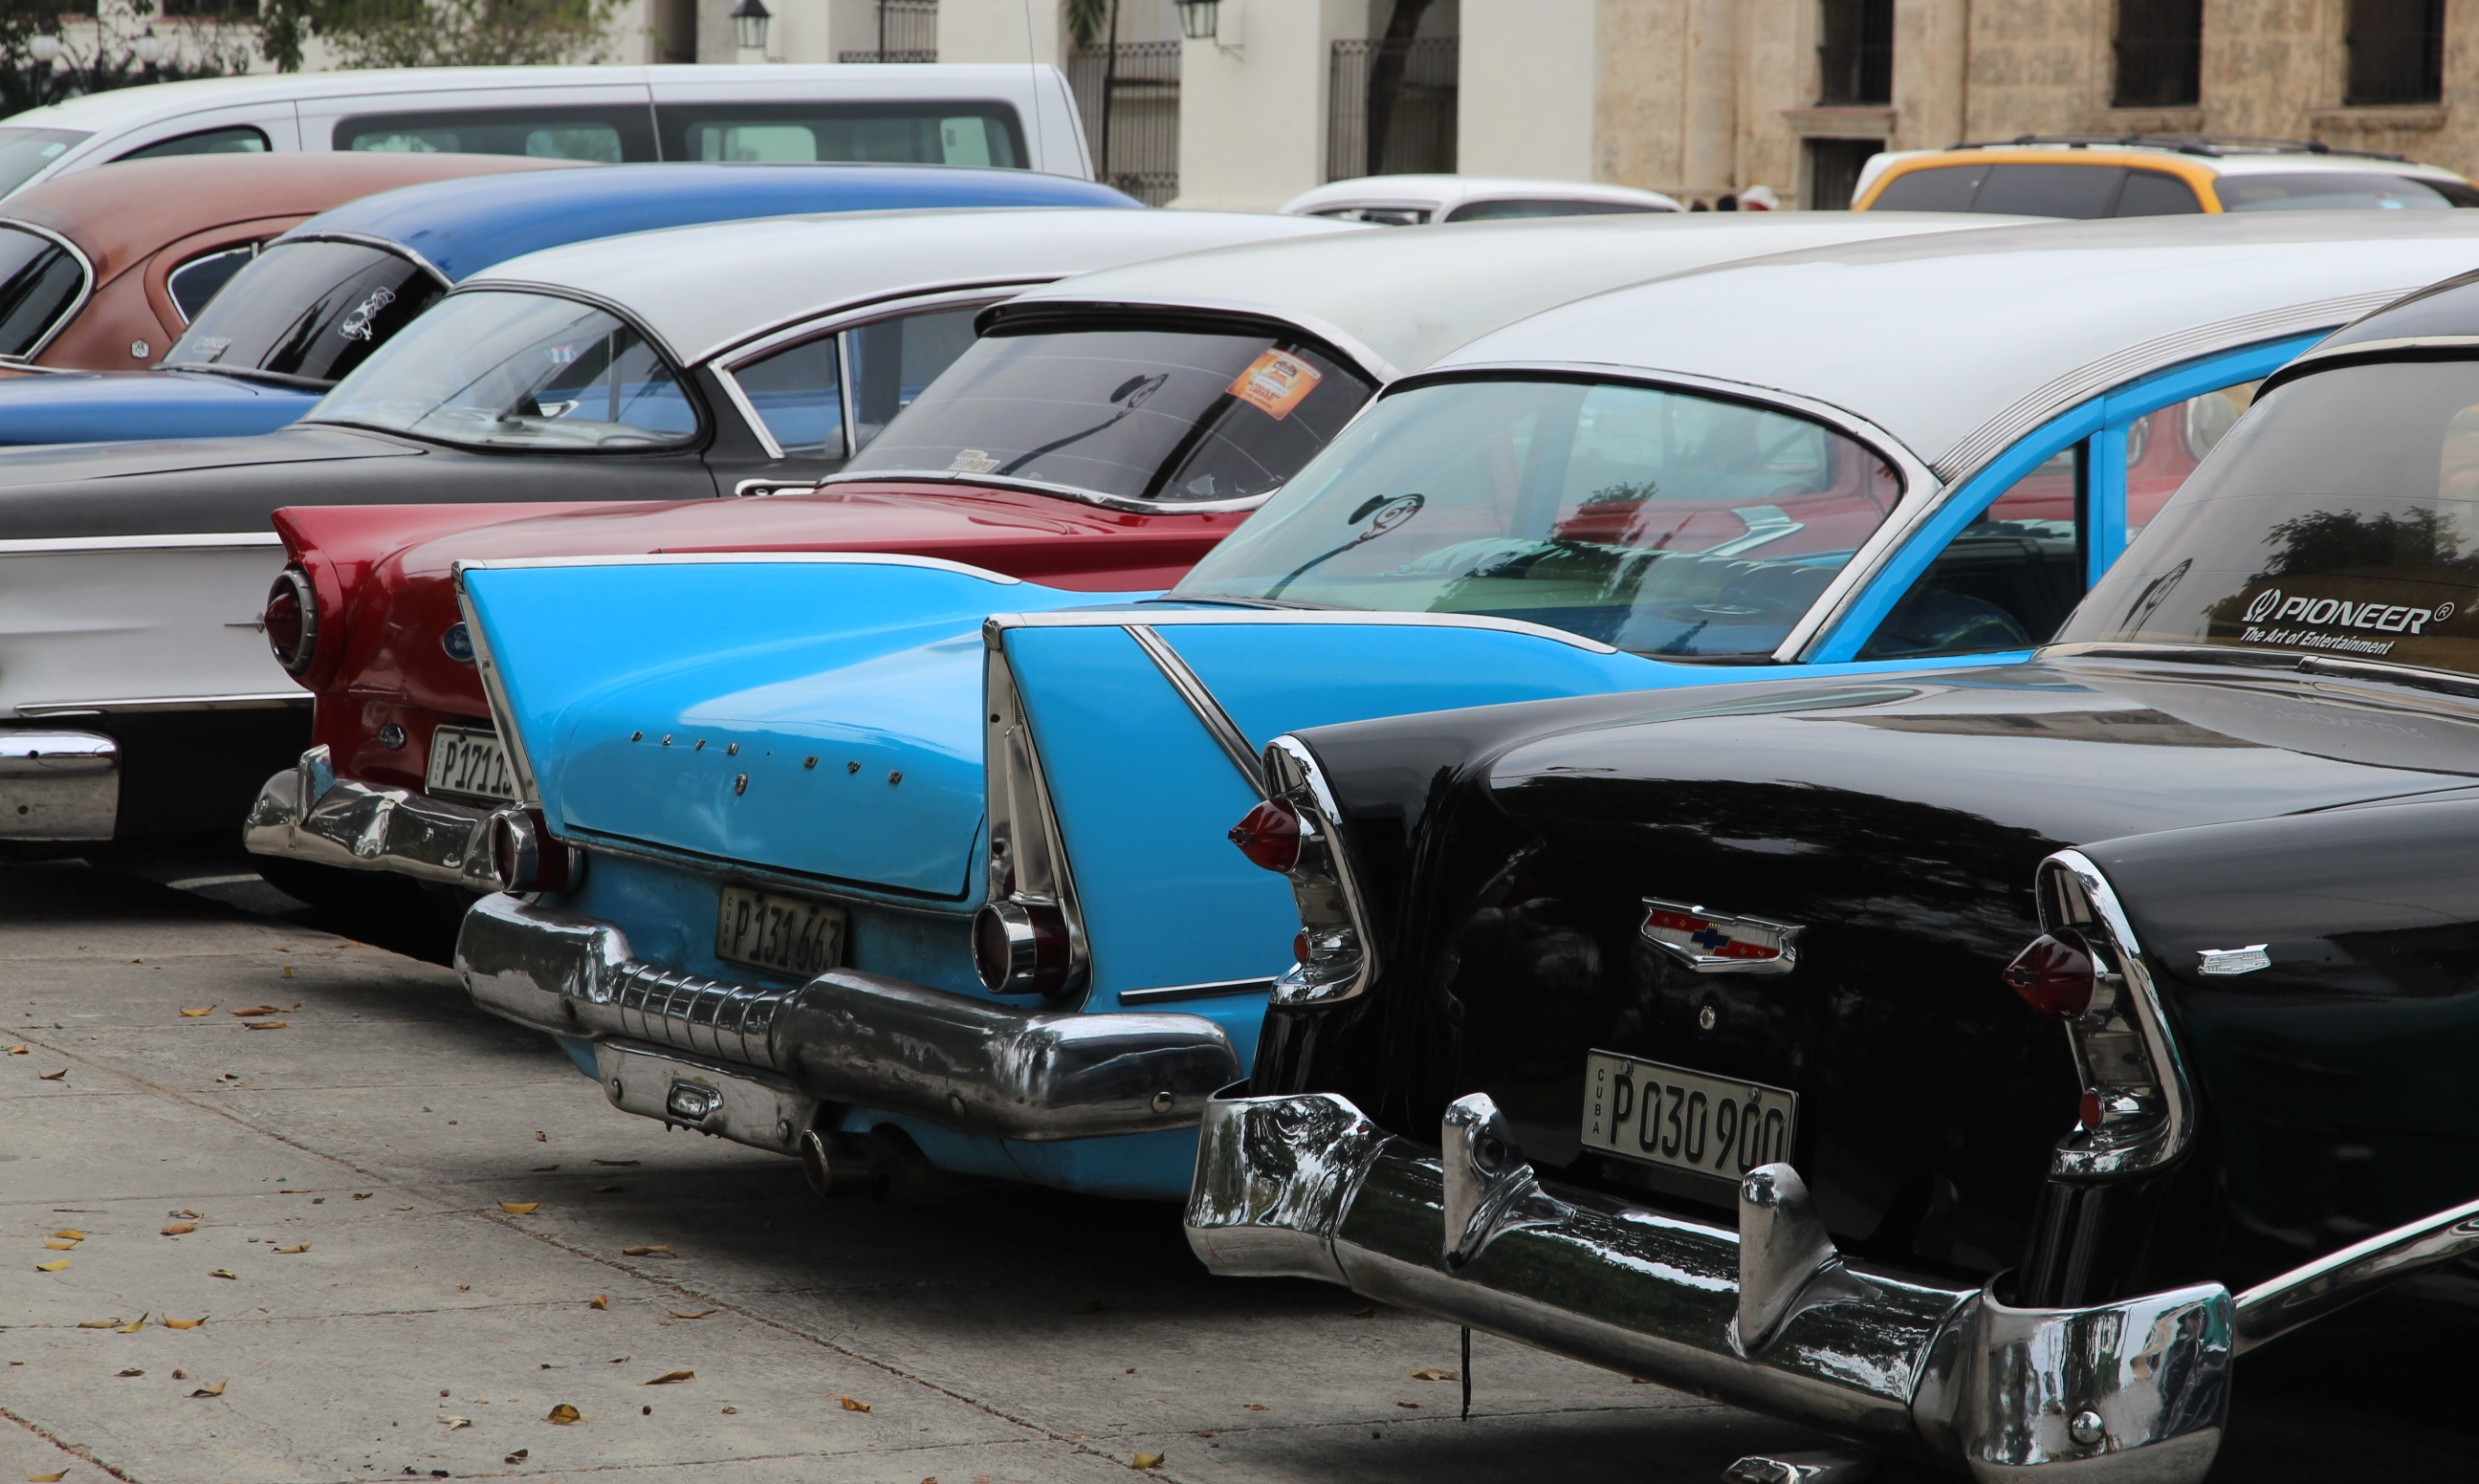 Cuba—the land of vintage cars | Where to next?